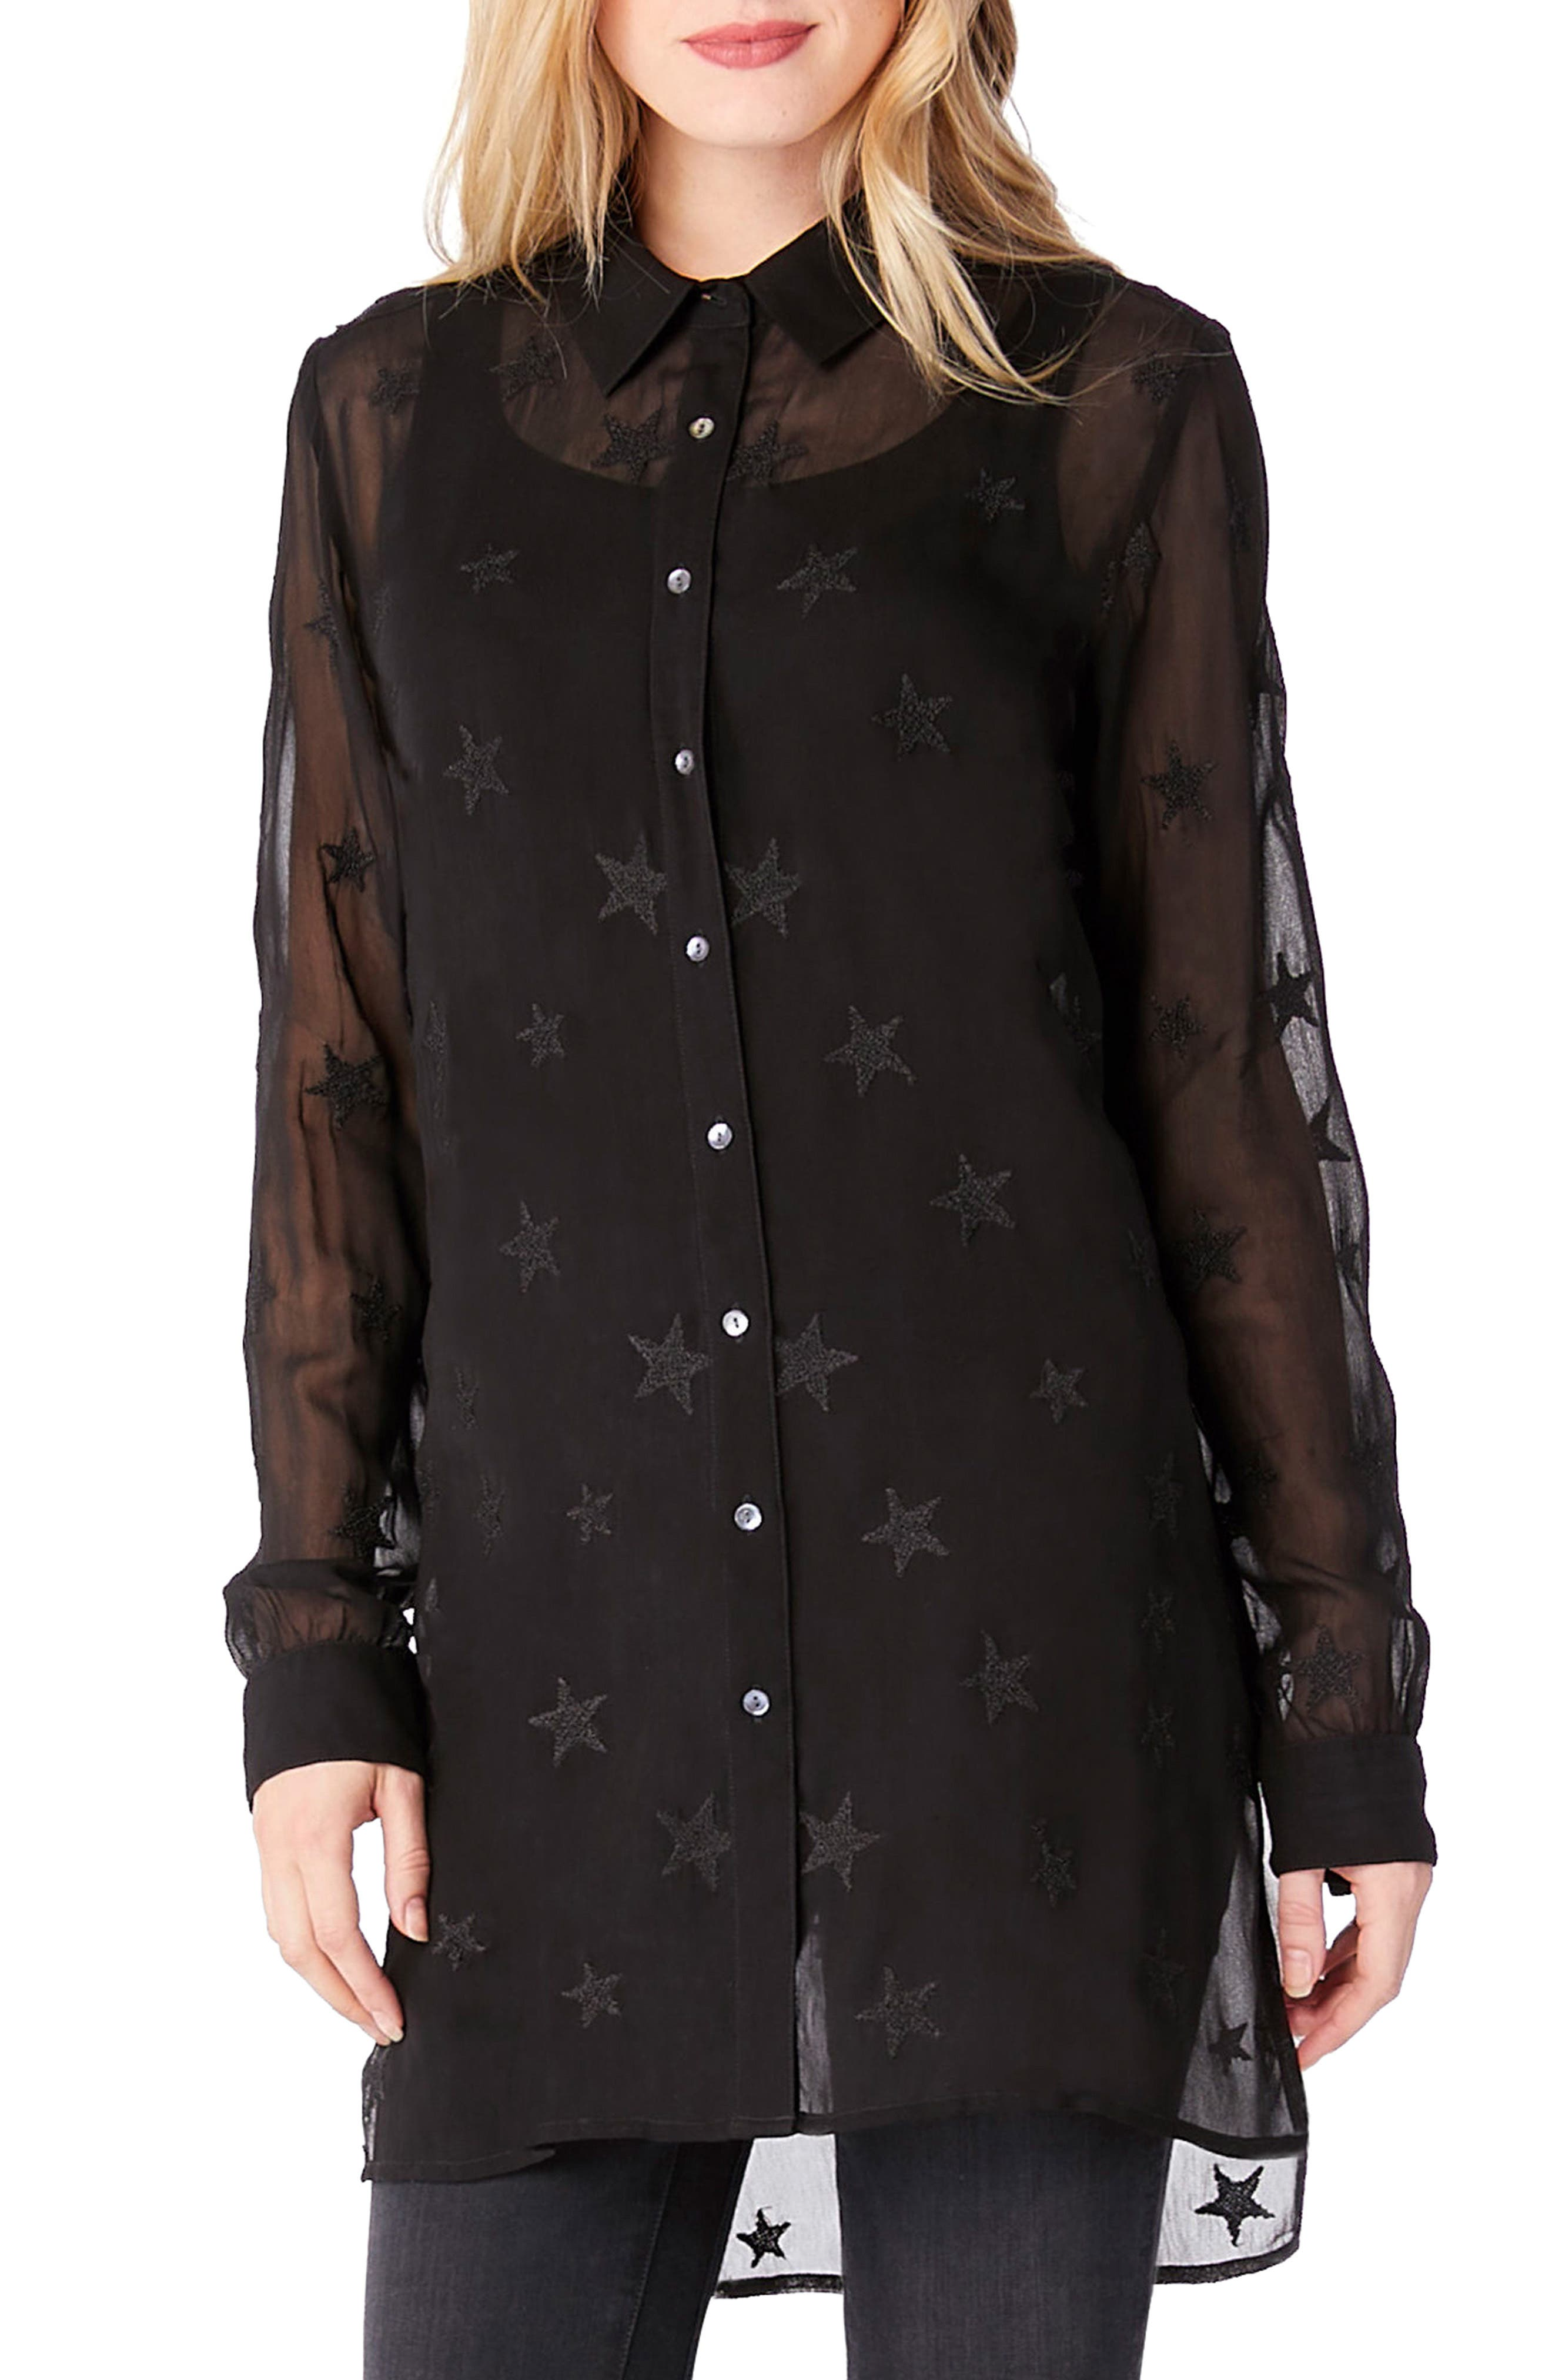 Star Embroidered Button-Up Shirt,                             Main thumbnail 1, color,                             Black